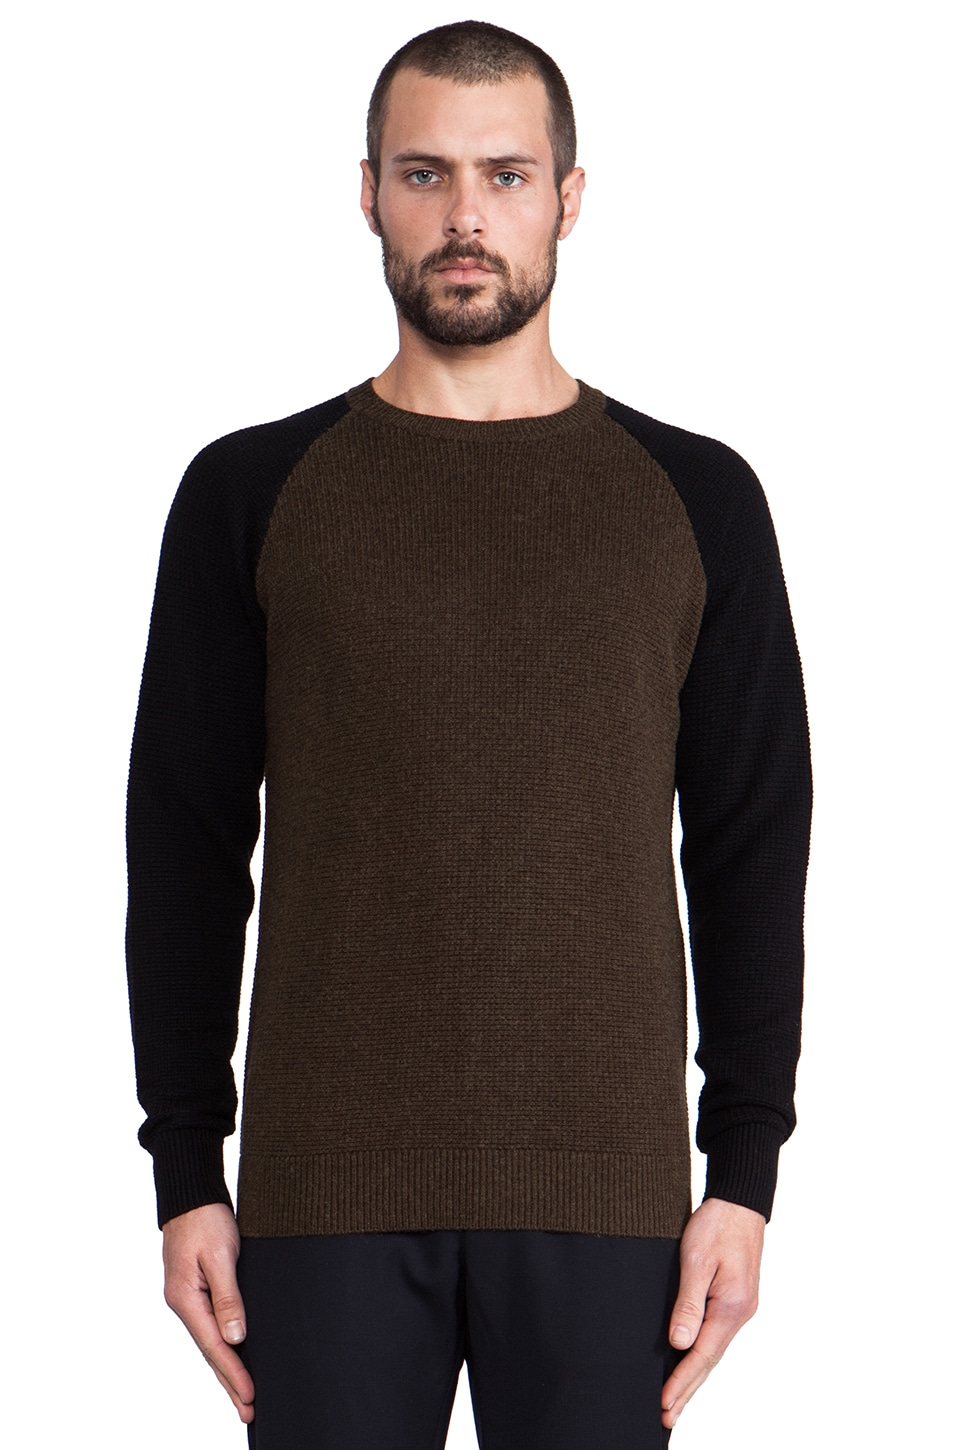 Shades of Grey by Micah Cohen Colorblock Waffle Knit Crewneck in Fatigue Green/Black